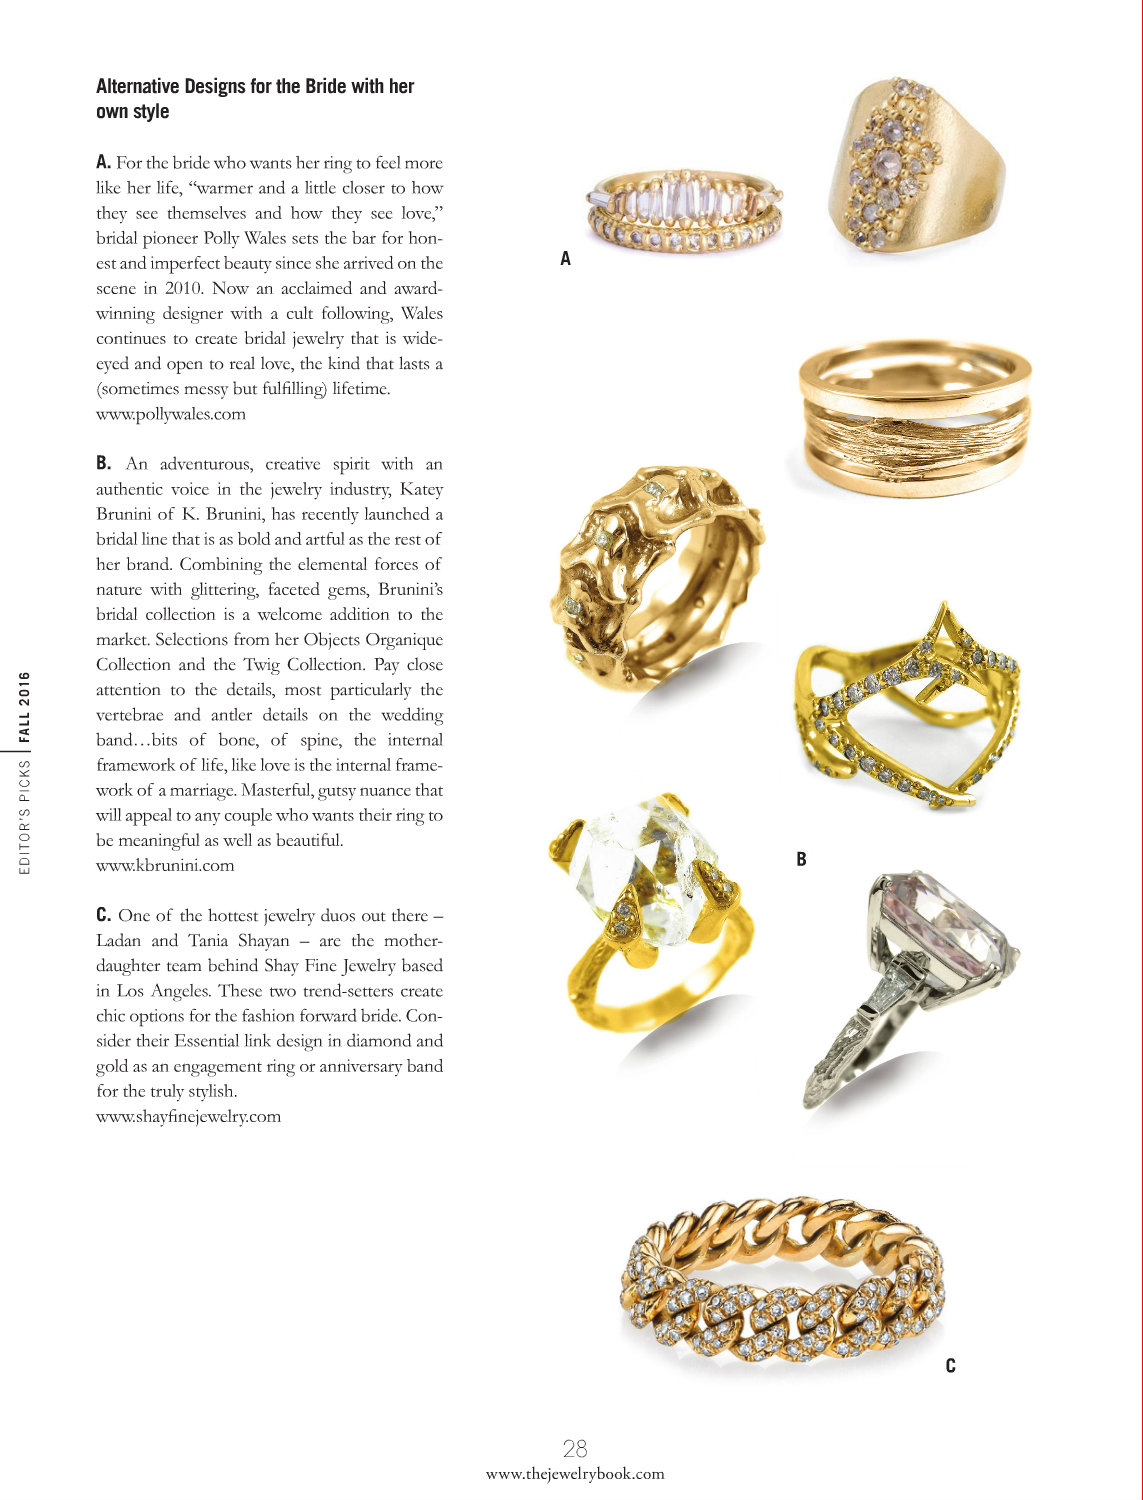 the-jewelry-book-alt-designs